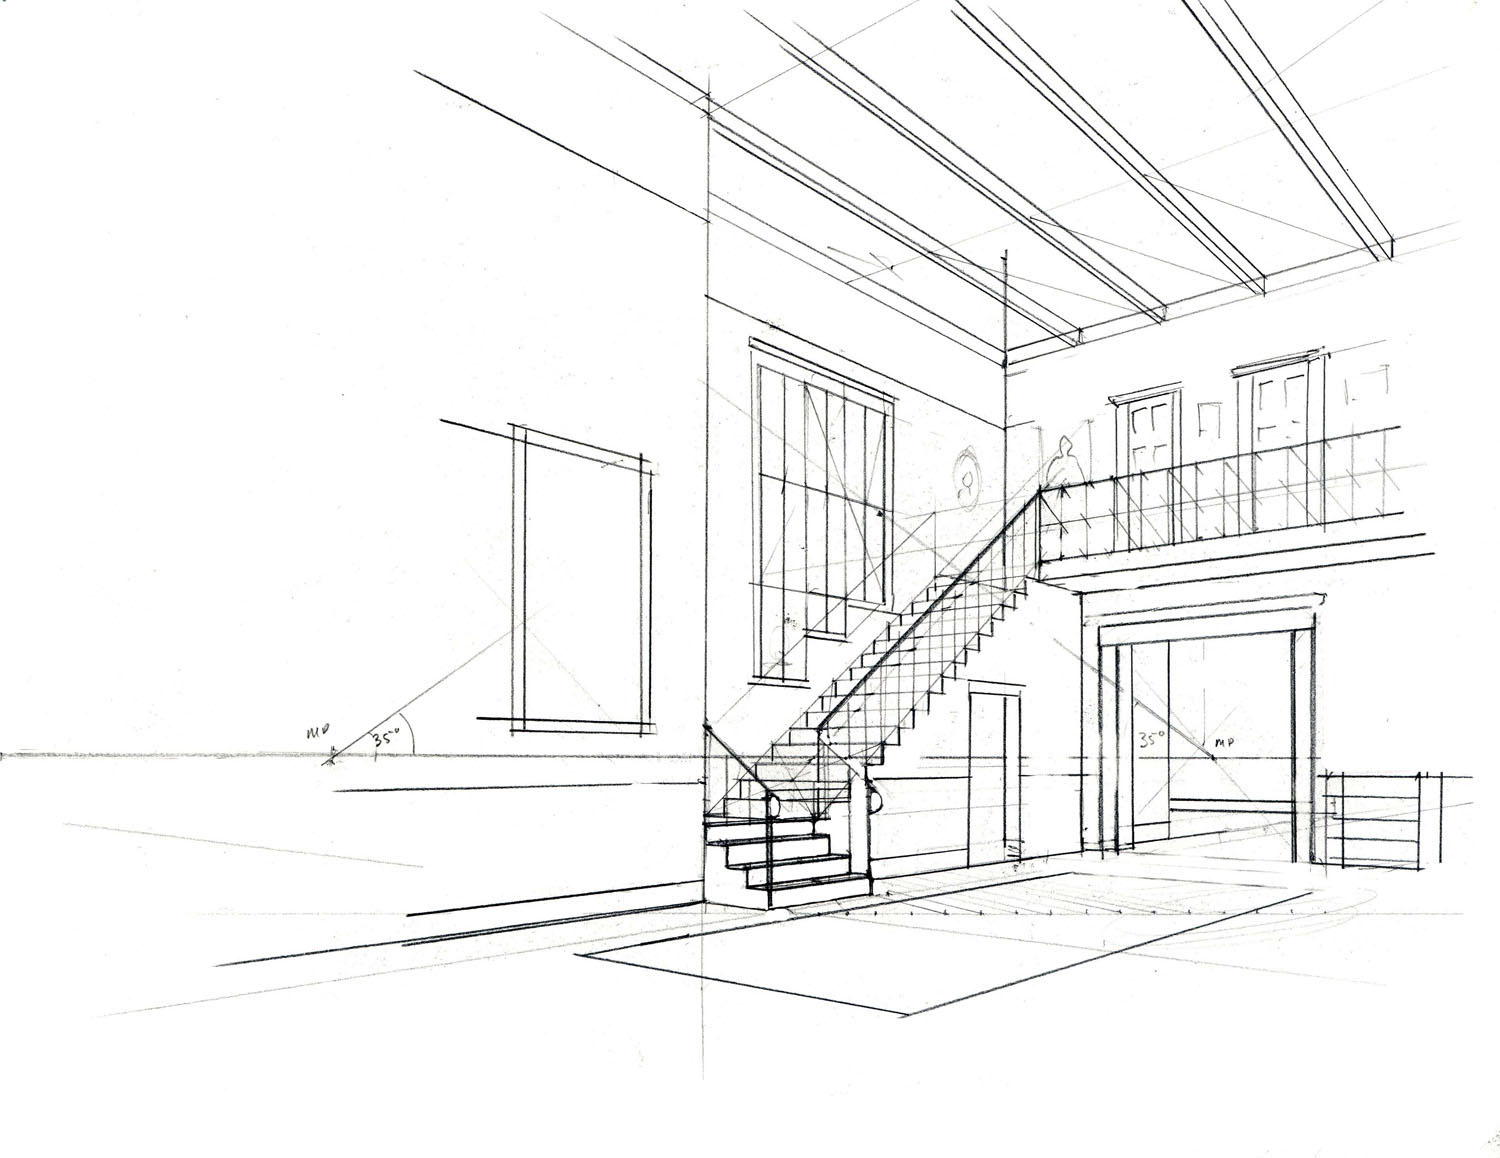 Open door drawing perspective - Stage 2